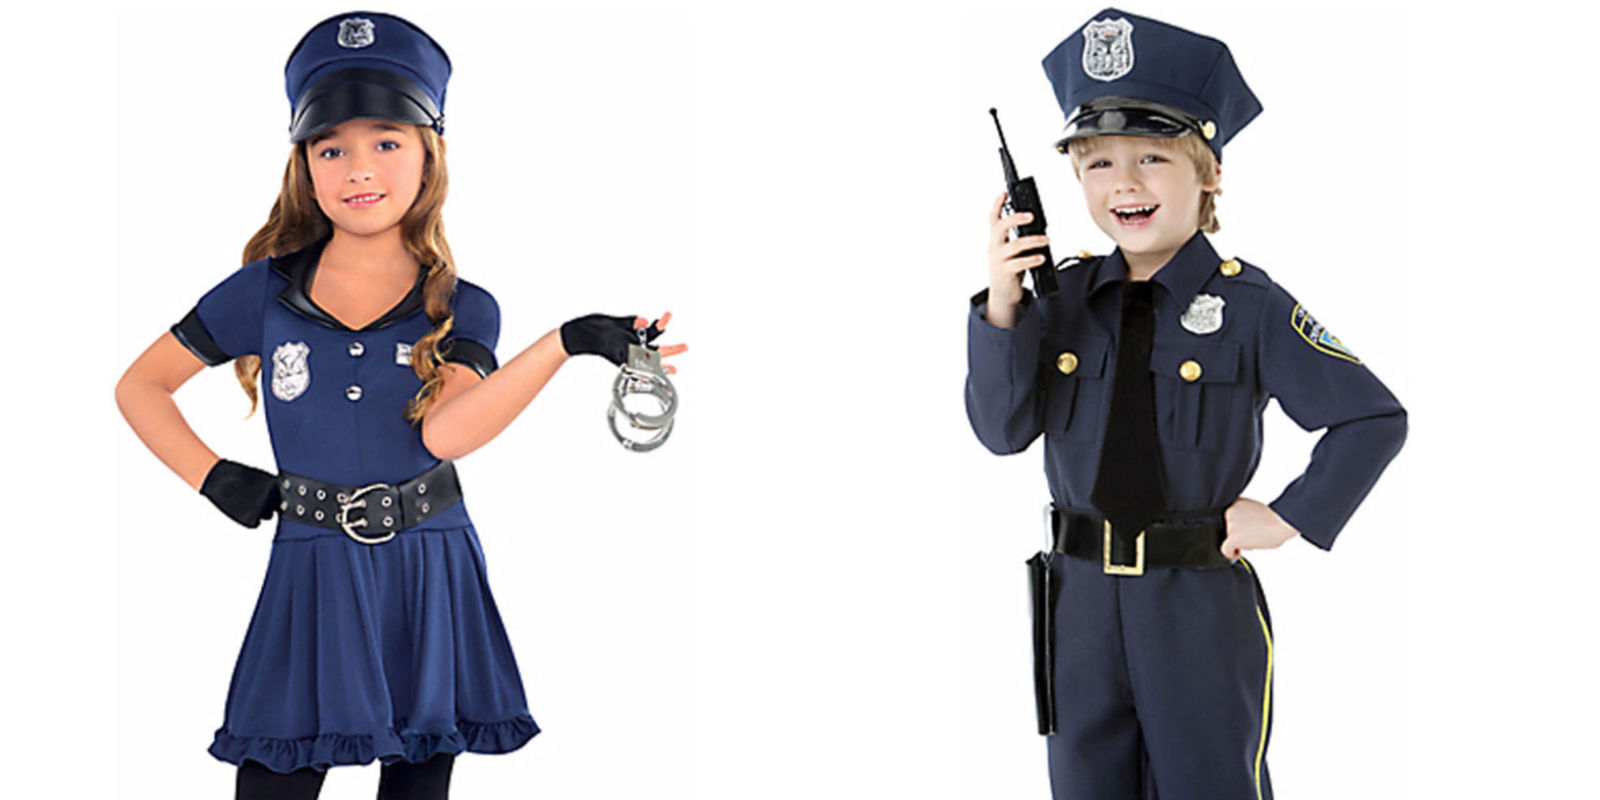 mom writes furious open letter about party citys halloween costumes for girls - Girls Cop Halloween Costume